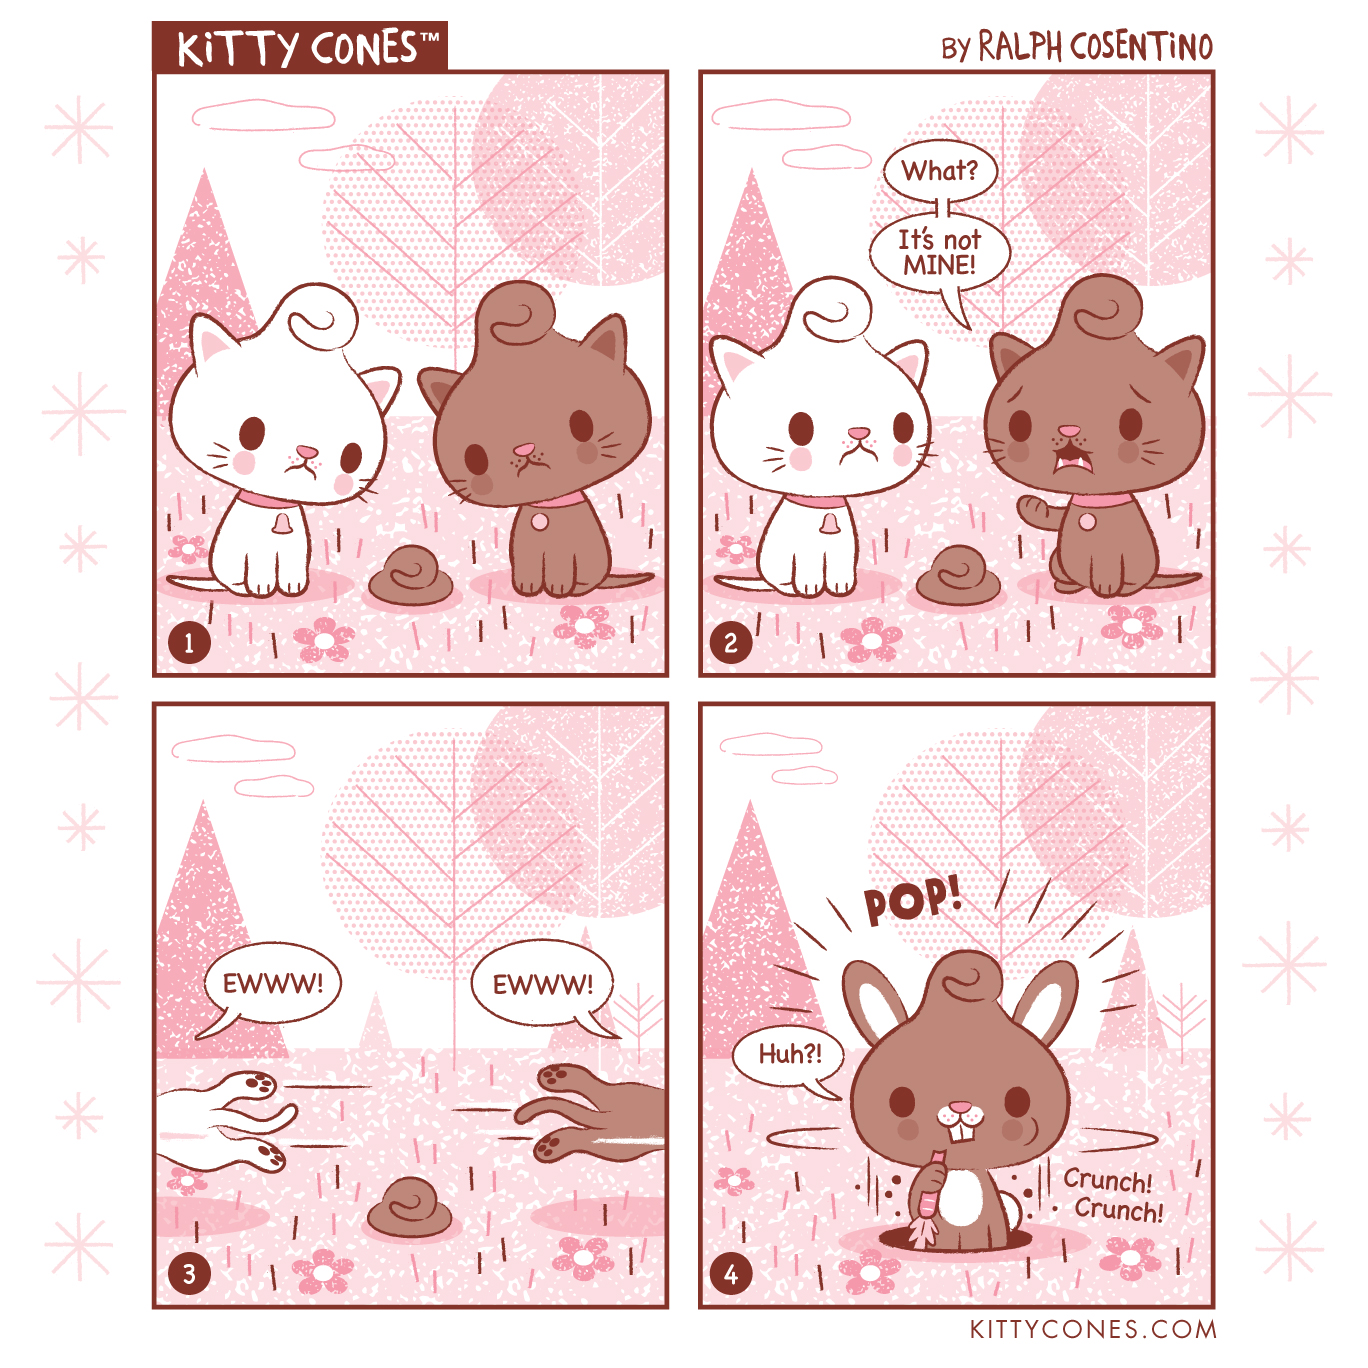 Kitty Cones Comic Strip # 2